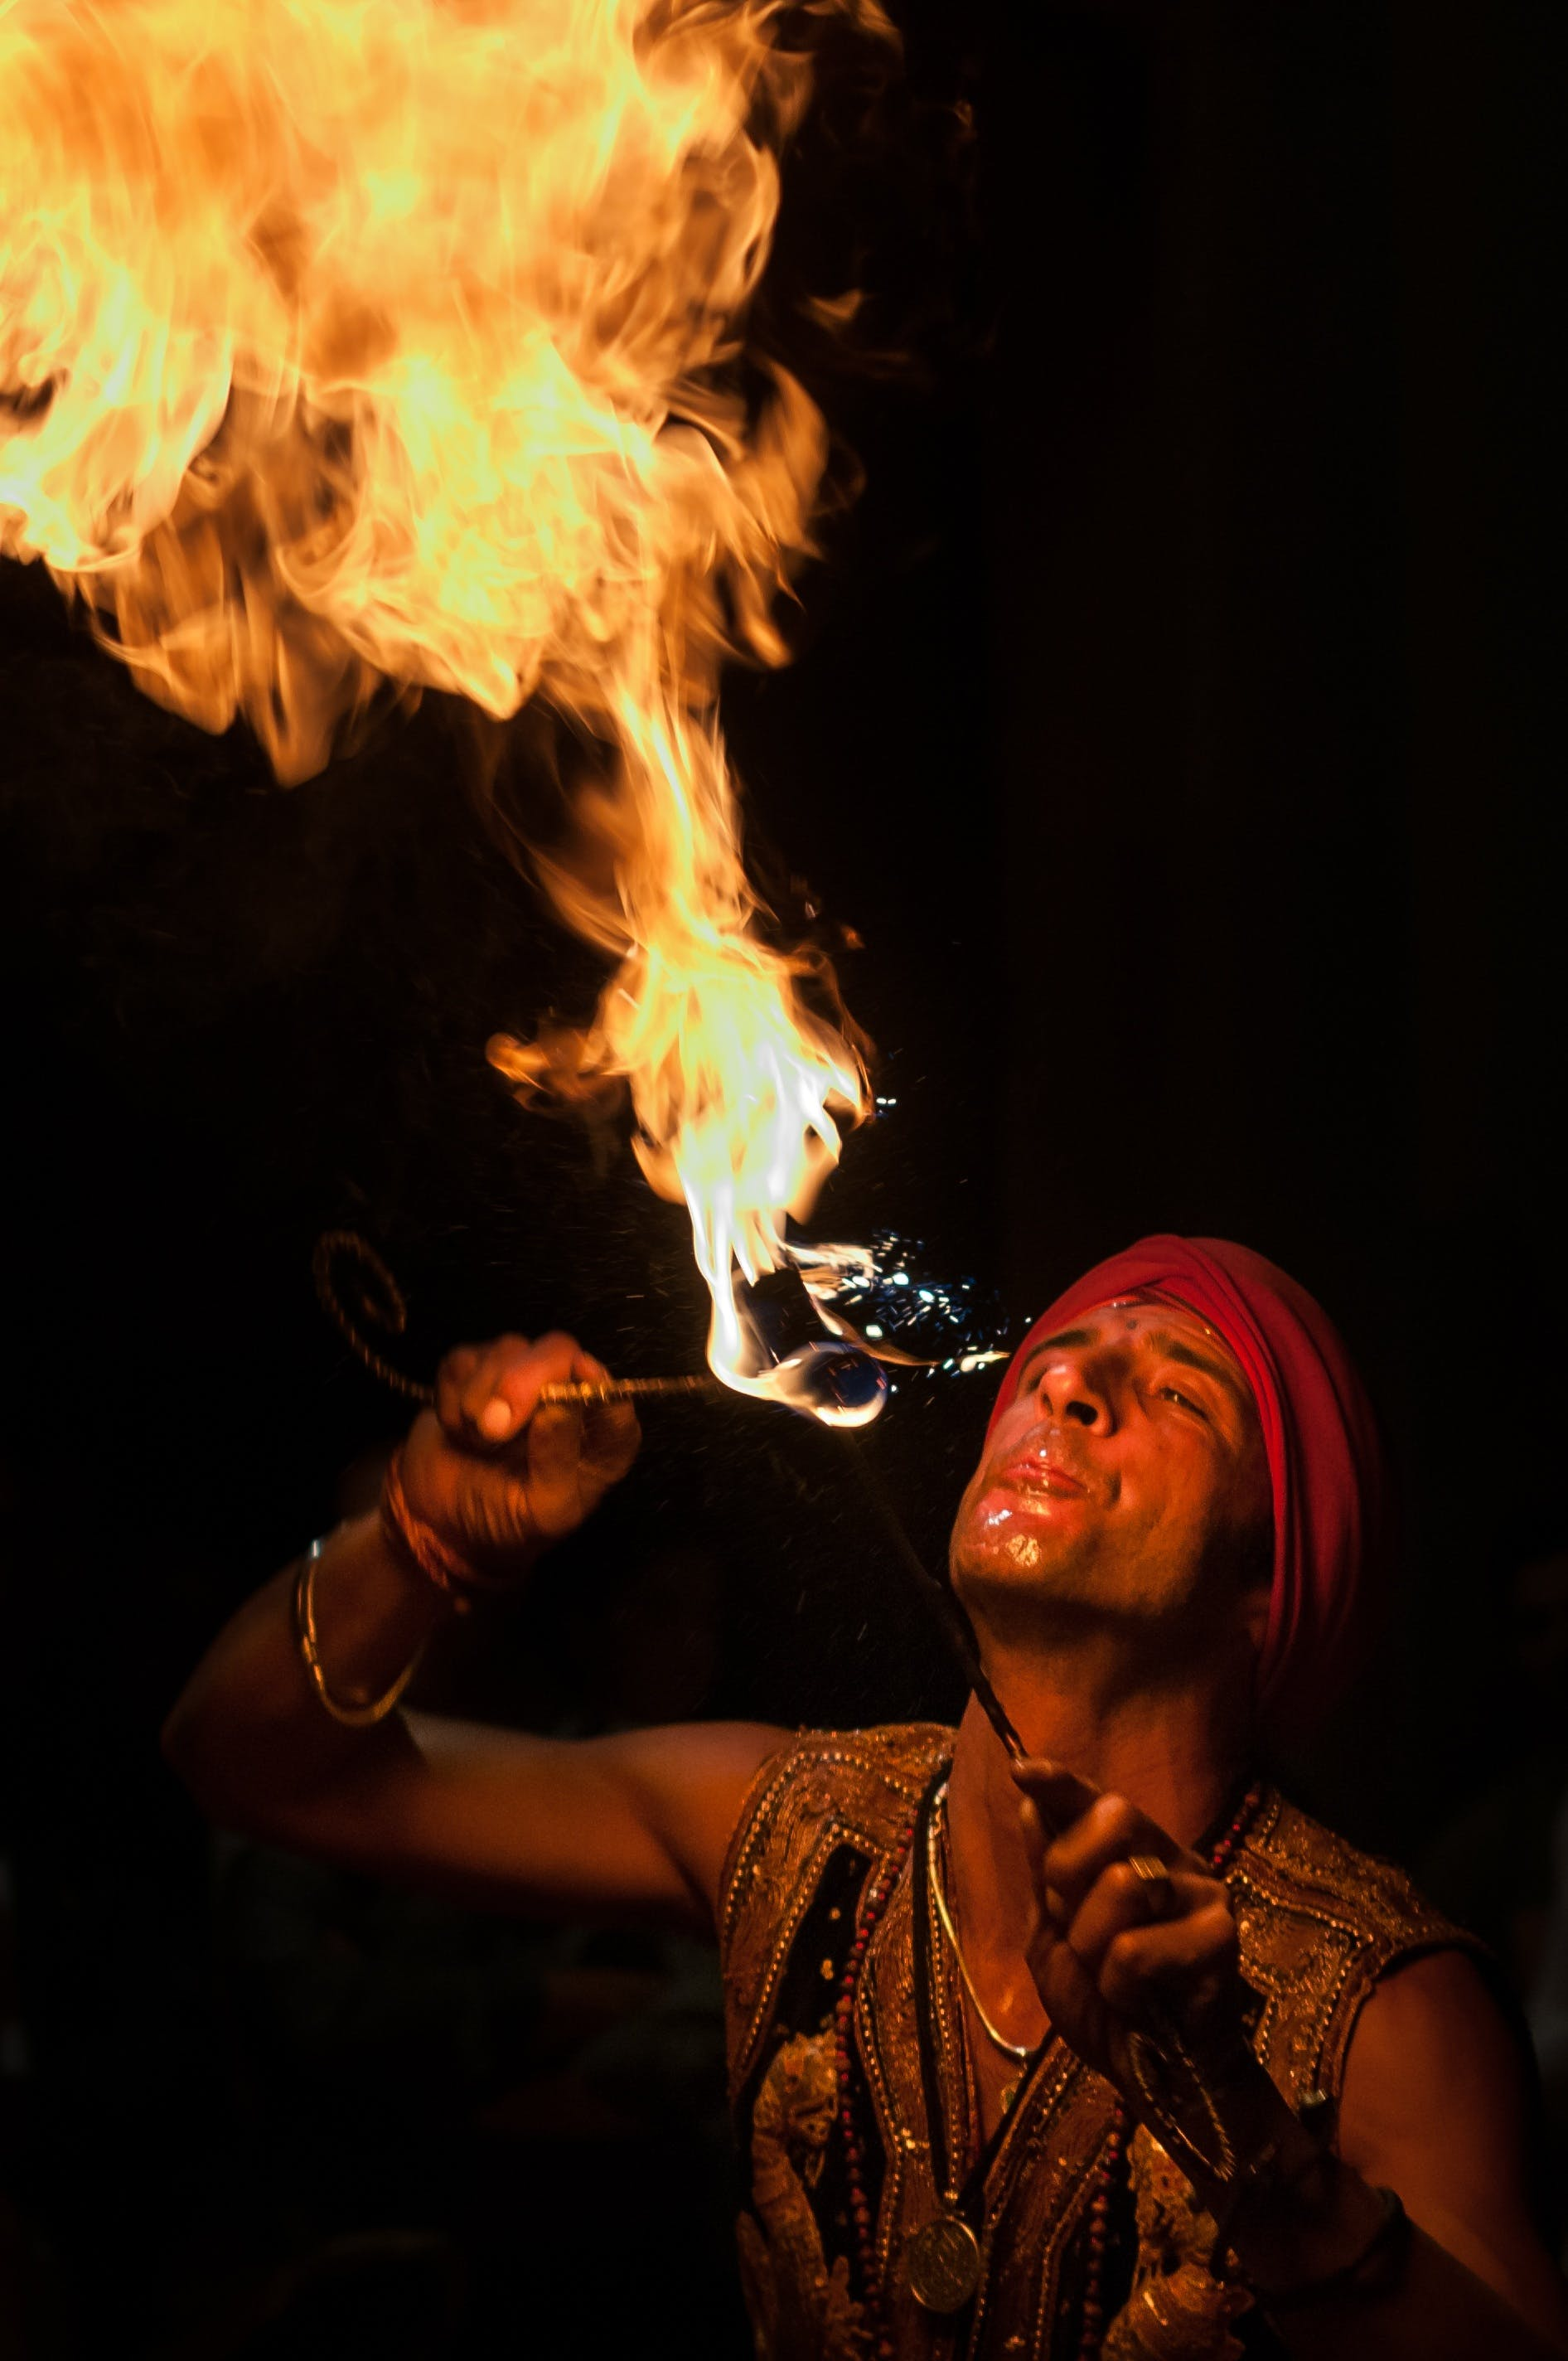 Free stock photo of man, fire, street artist, street performer